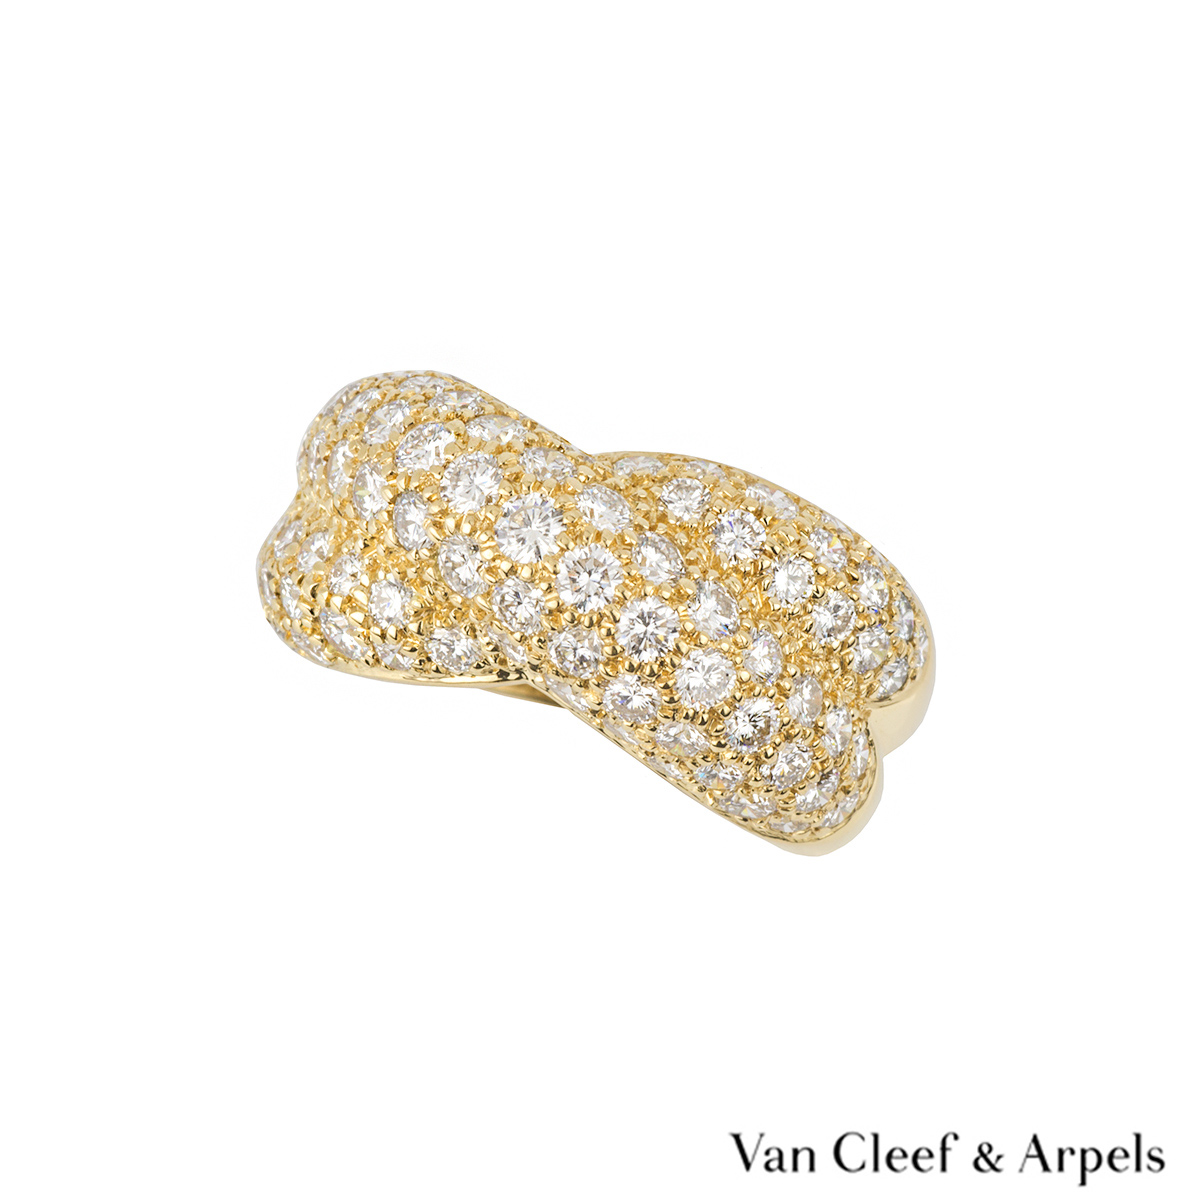 Van Cleef & Arpels 18k Yellow Gold Diamond Set Dress Ring